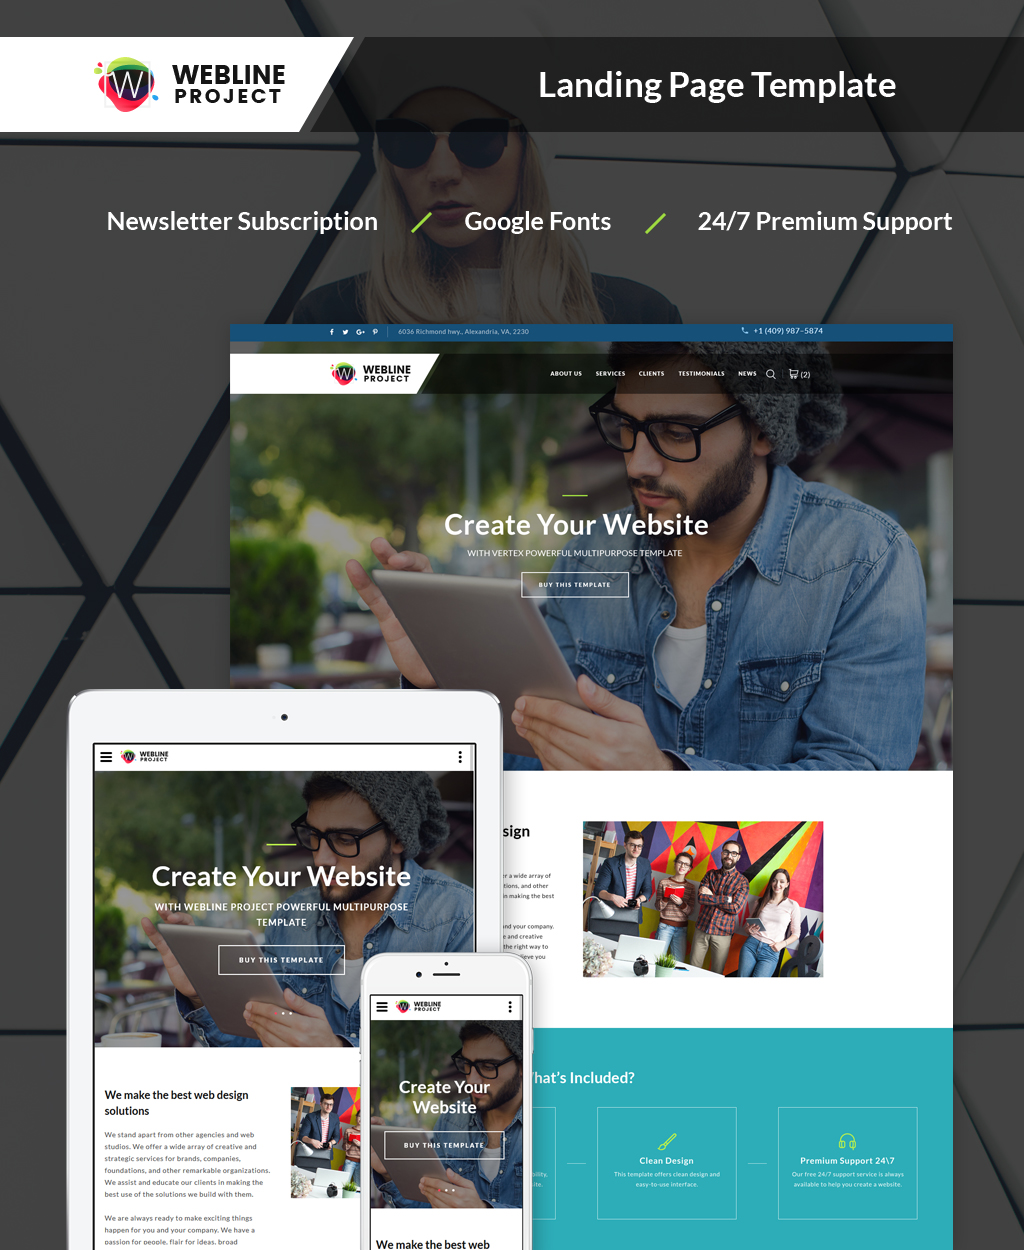 Webline Project - Corporate Landing Page Template